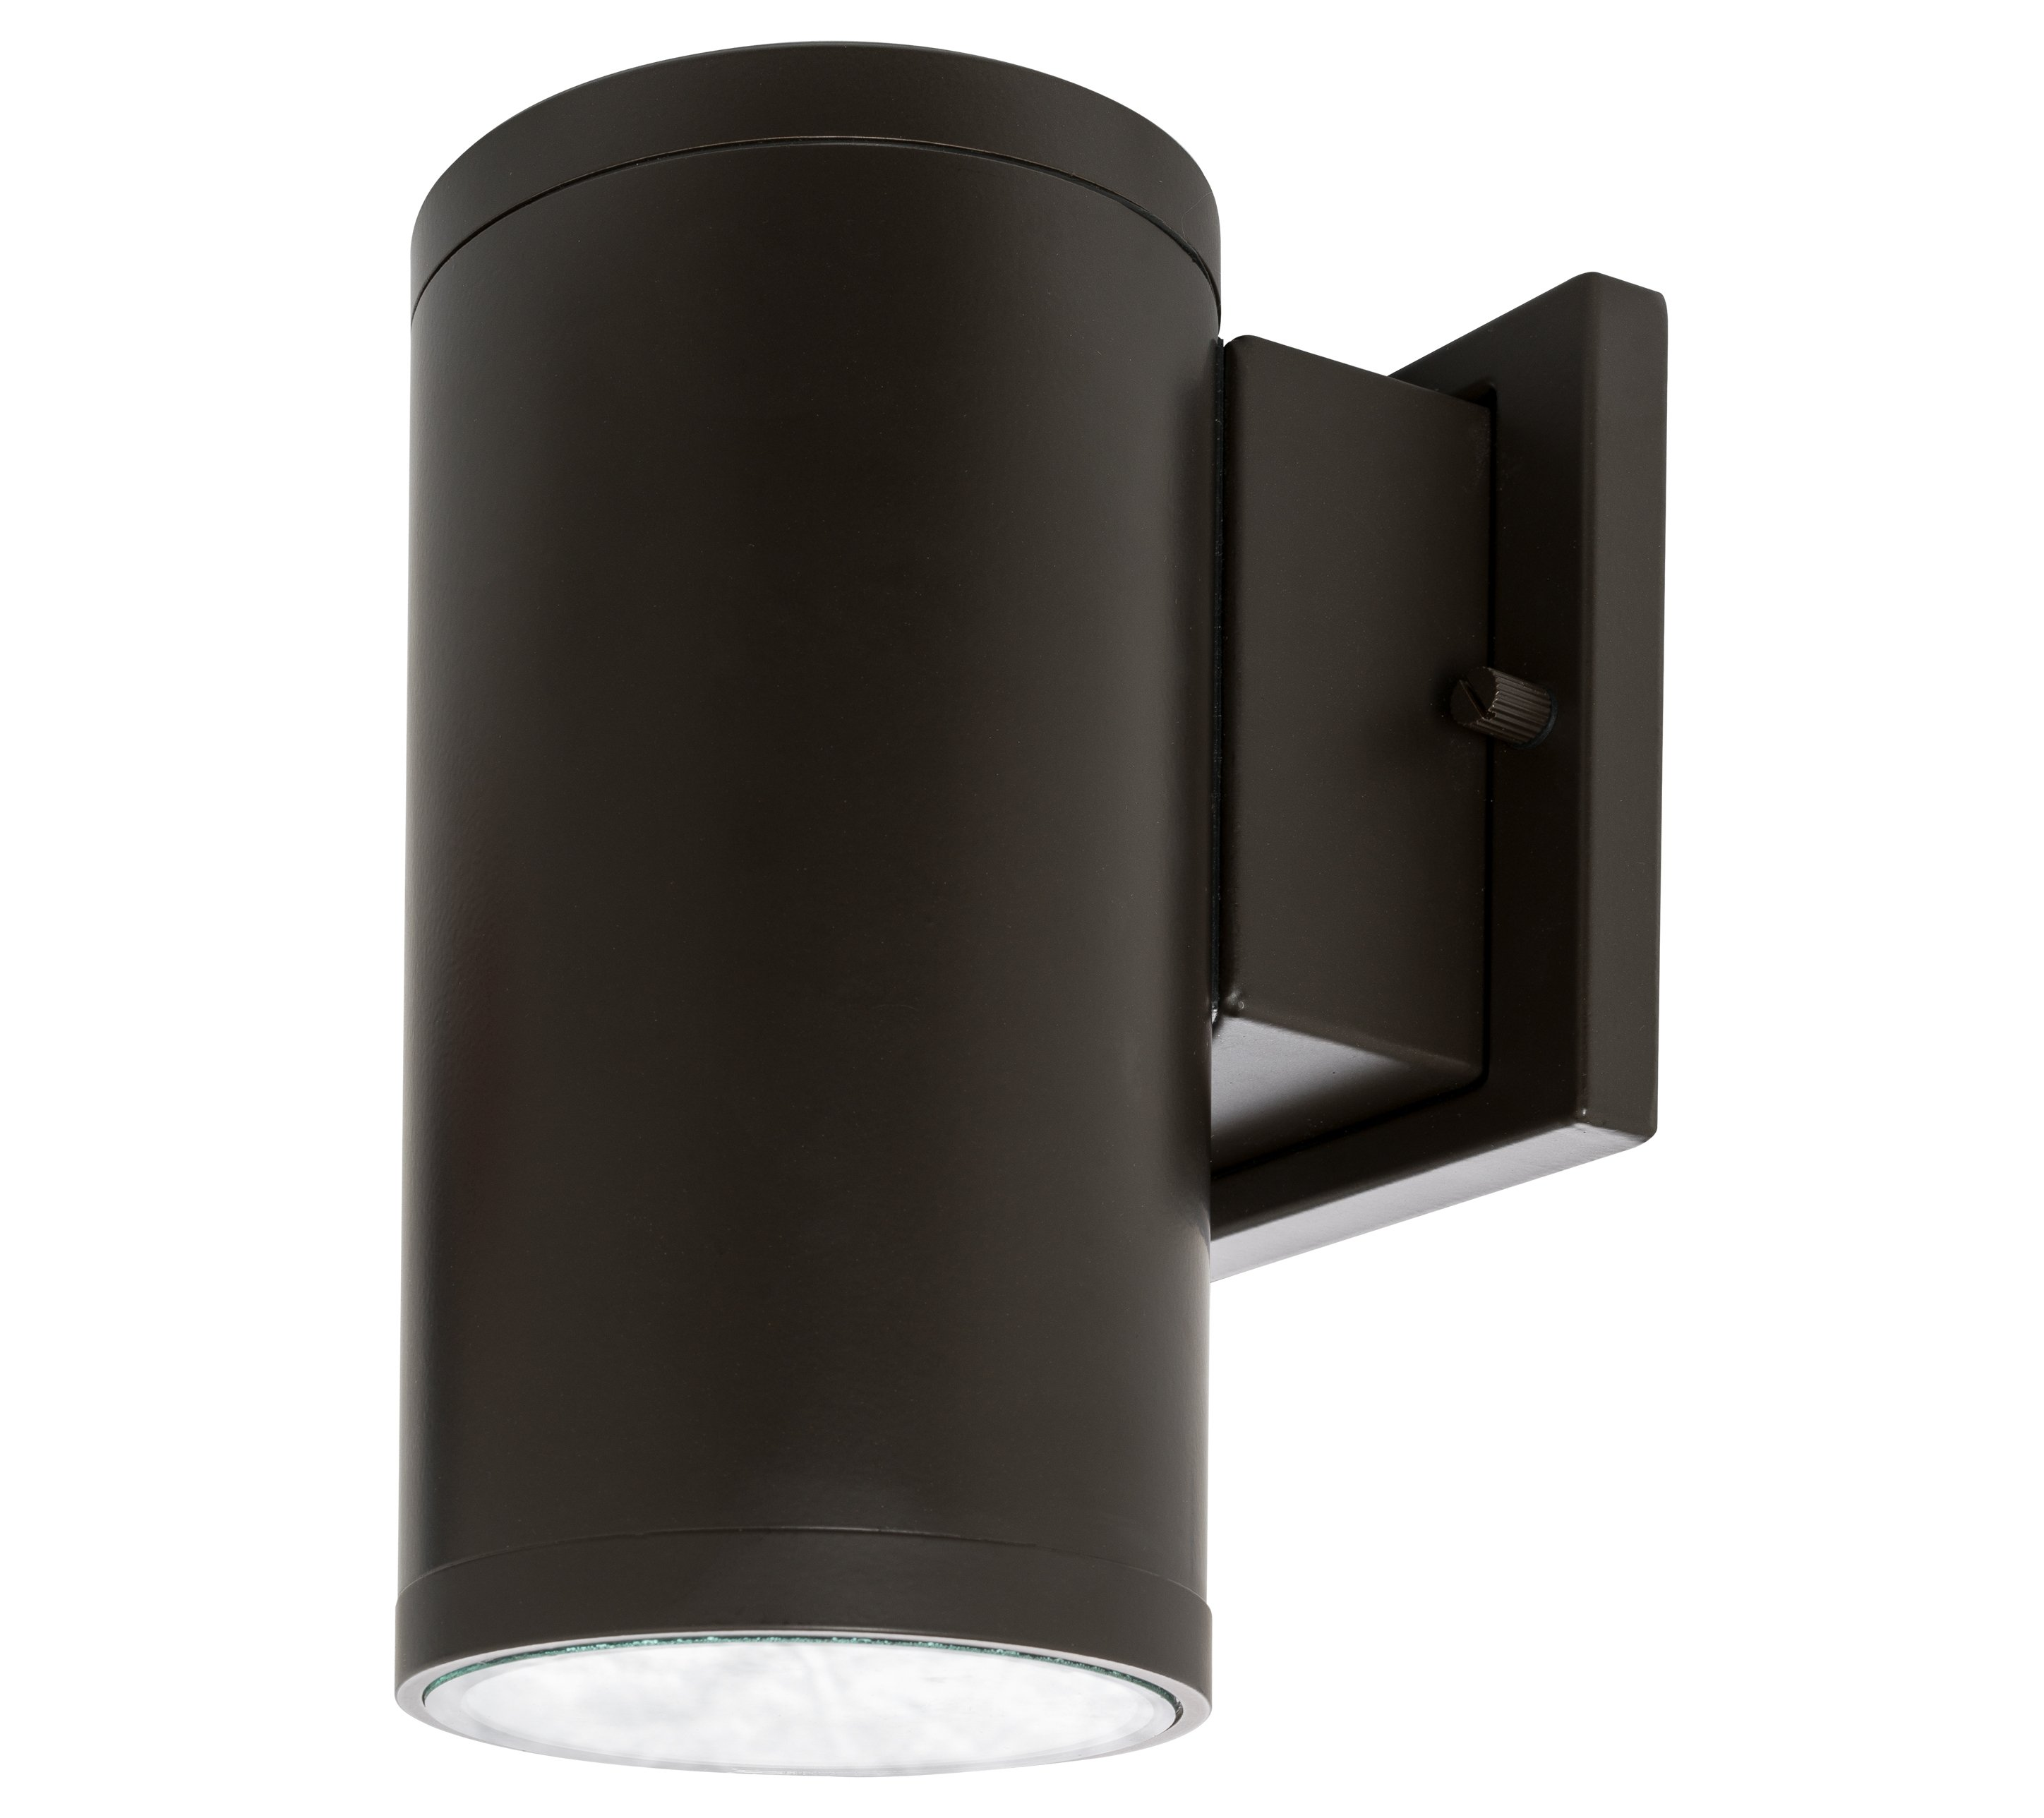 Westgate led outdoor cylinder light up down wall sconce lamp fixture ebay for Exterior light sconce